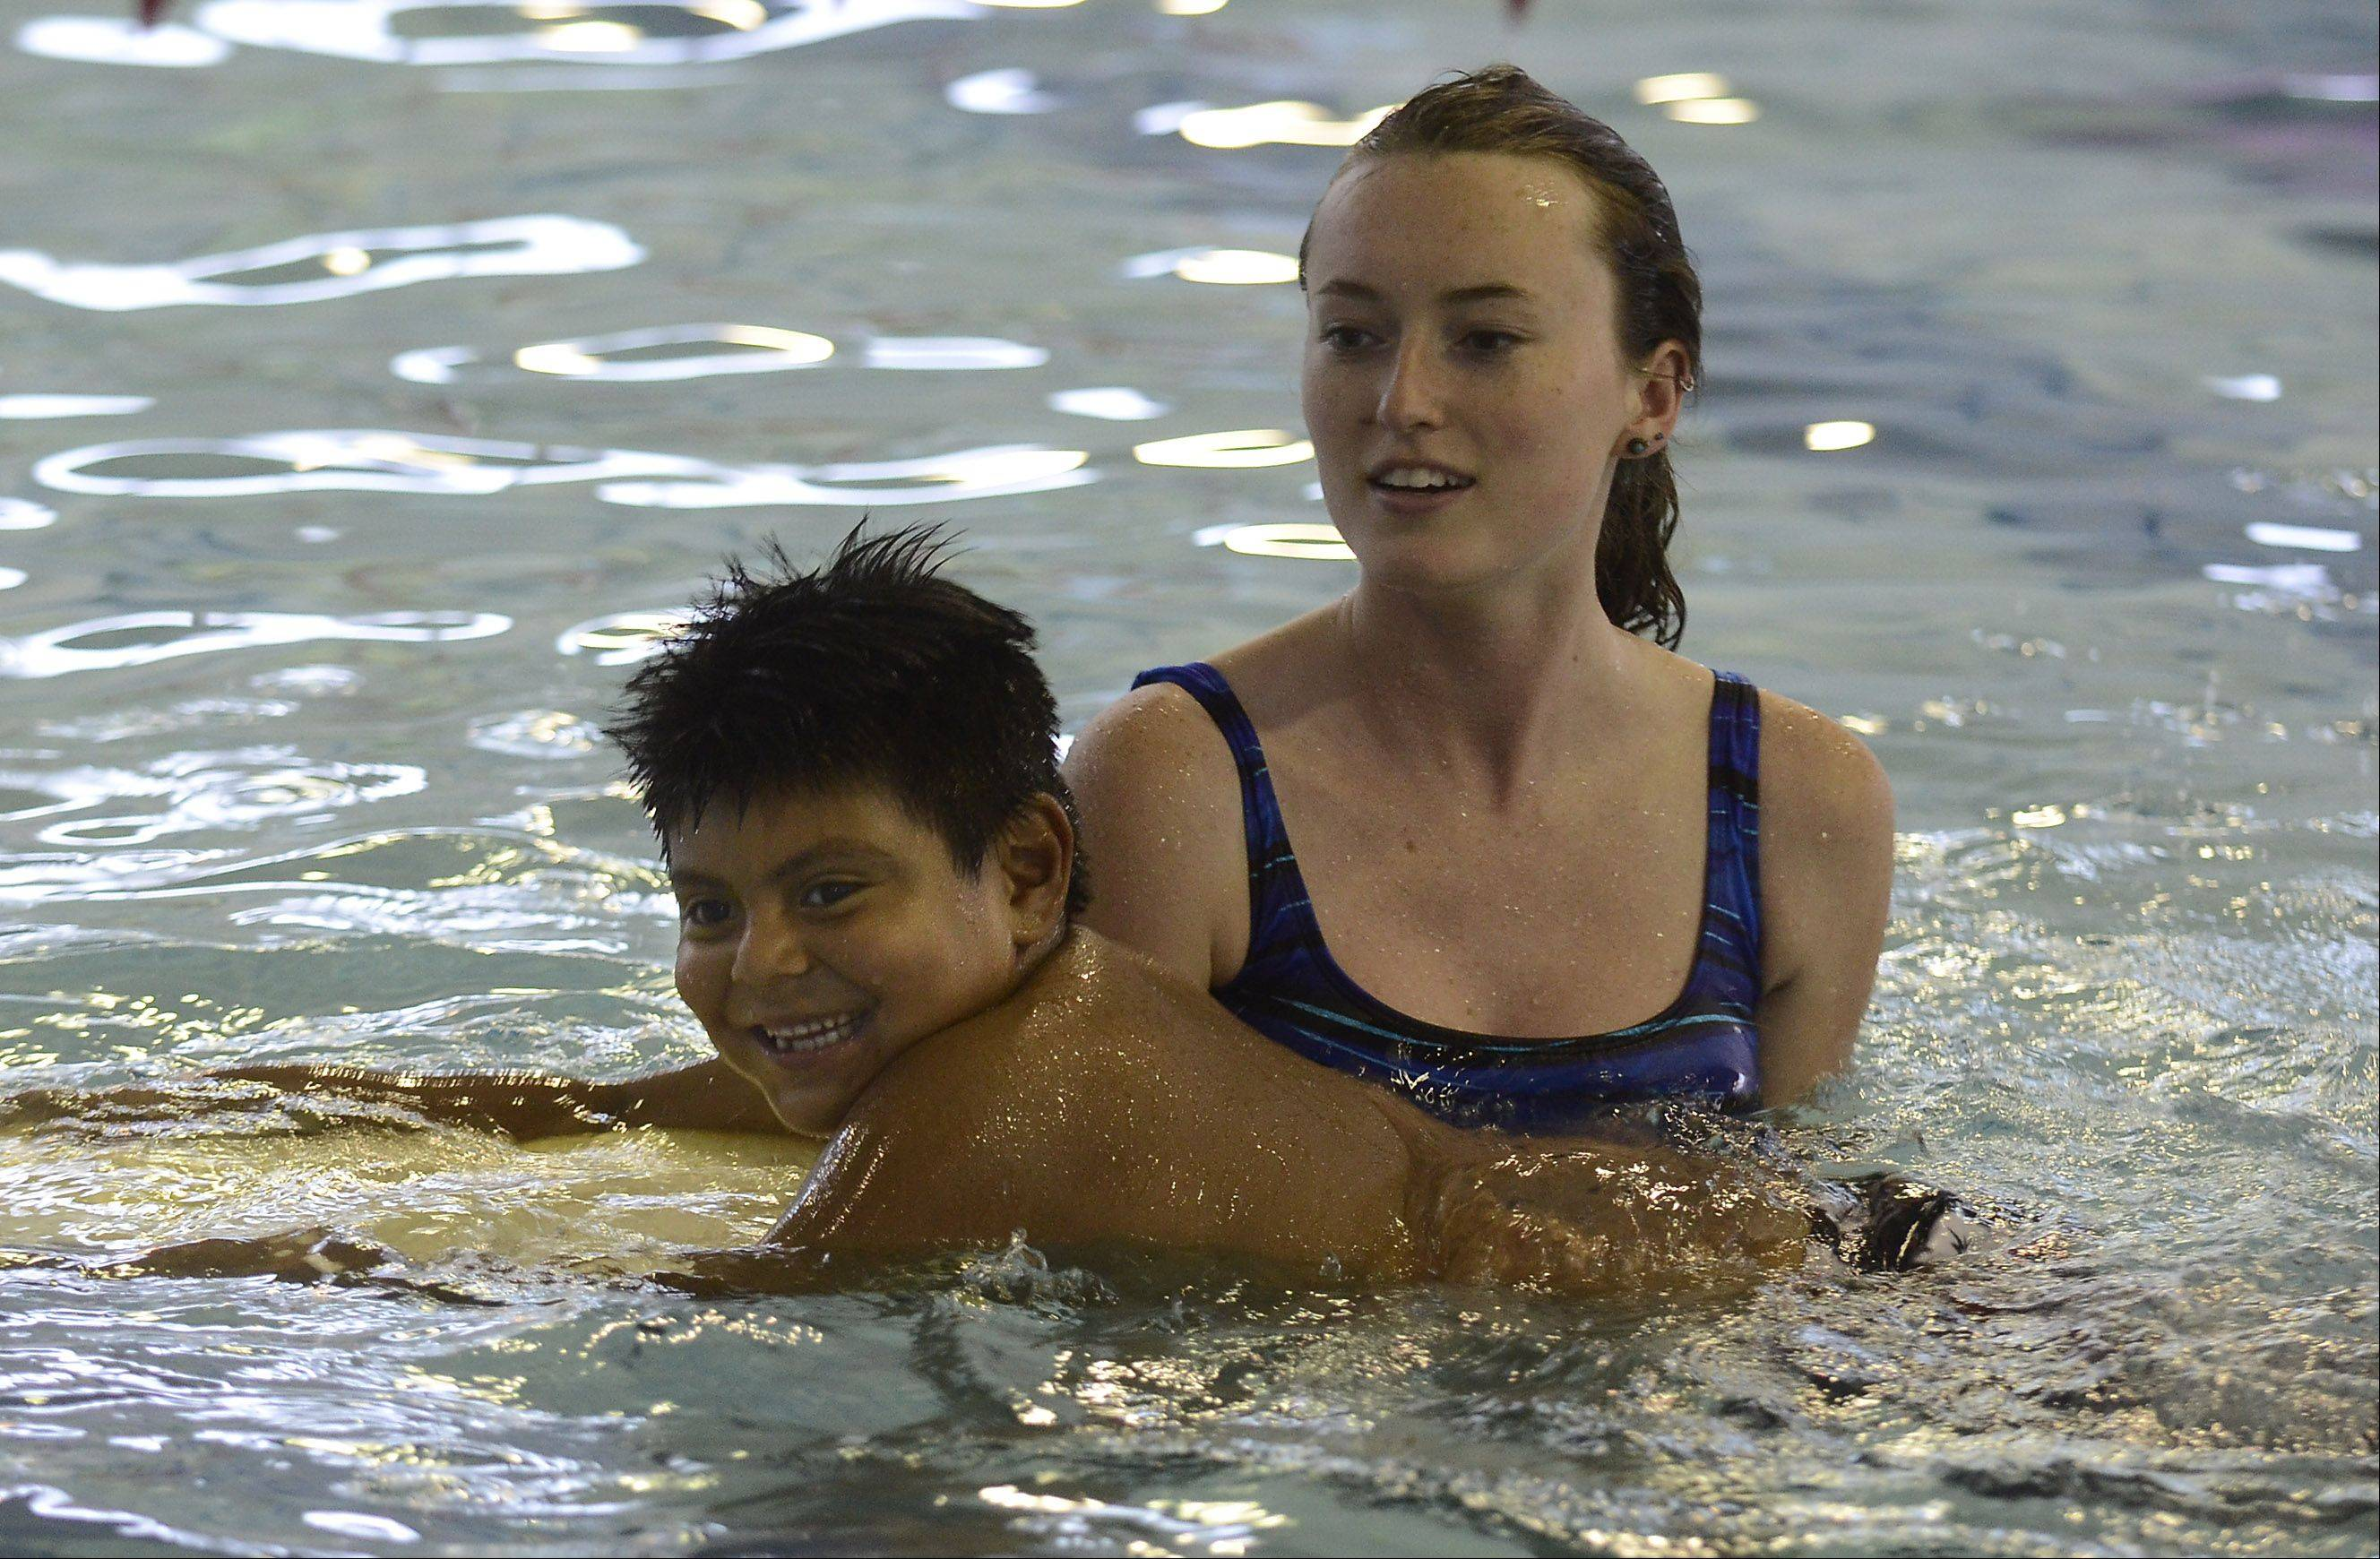 Nieve Heslan works with Luis Reyes, 6, at the first day of camp at the Wheeling Park District.